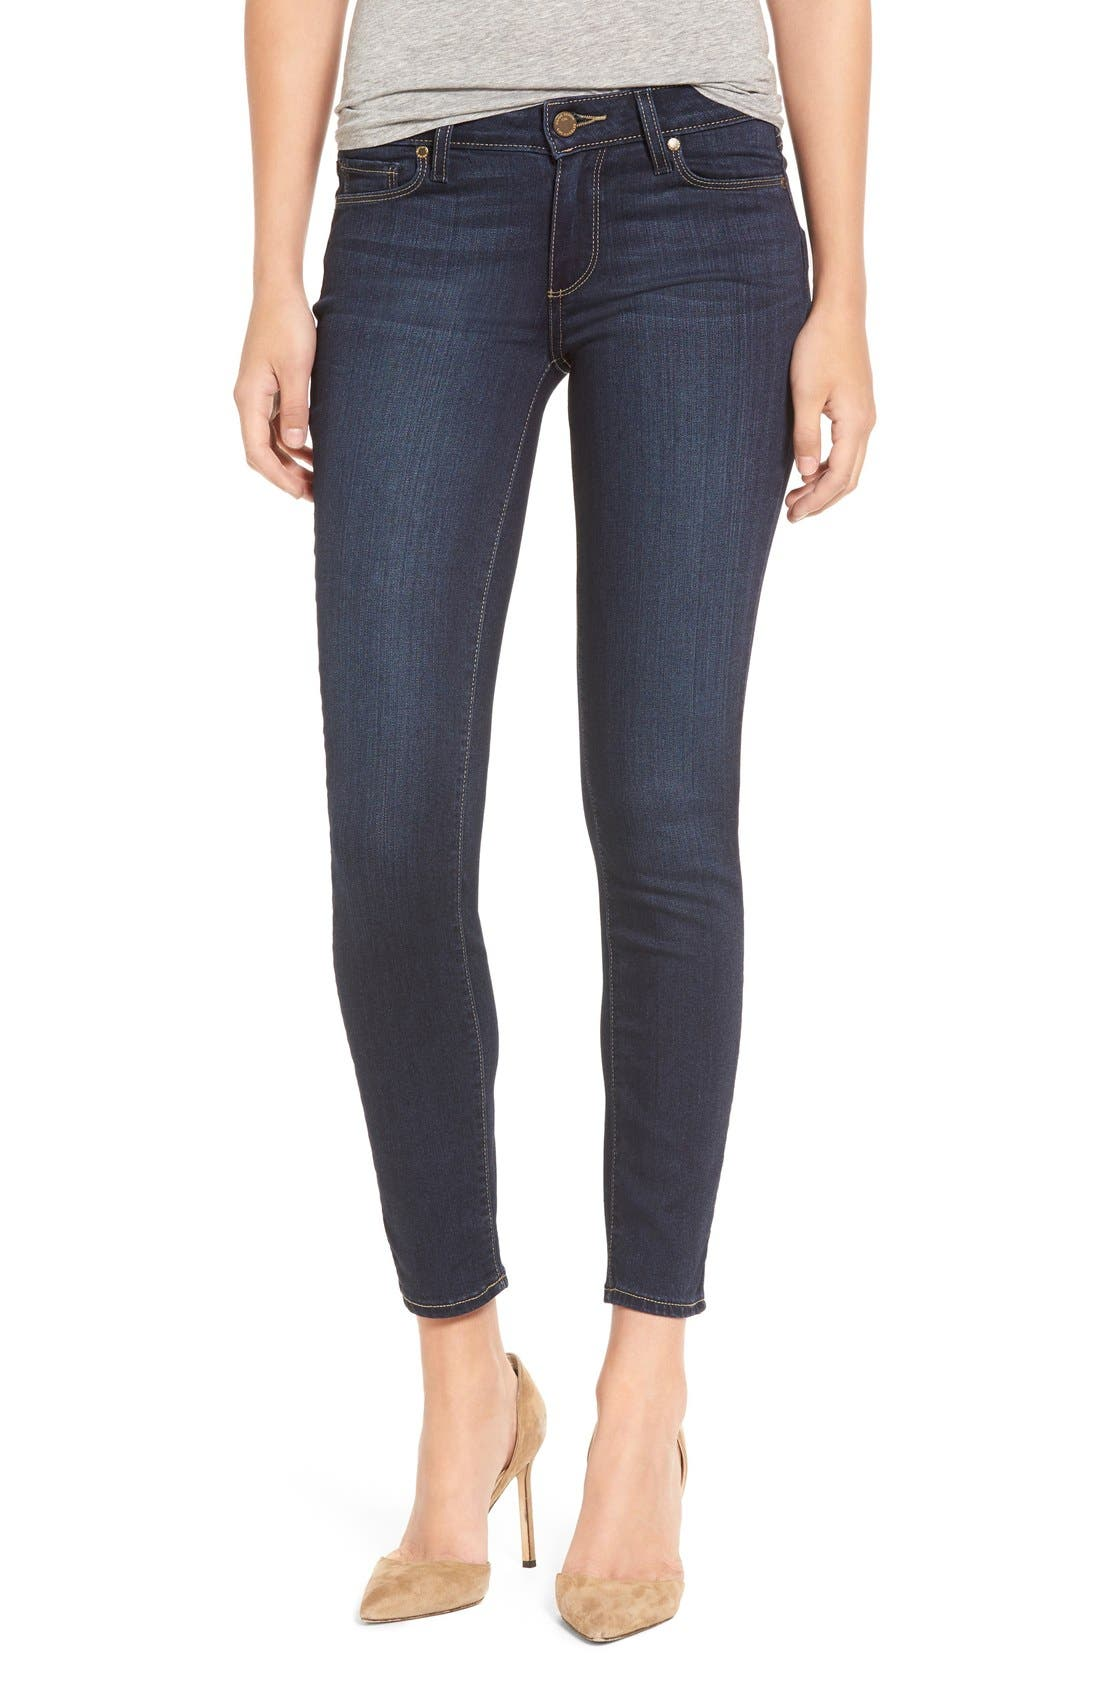 Main Image - PAIGE Transcend - Verdugo Ankle Ultra Skinny Jeans (Hartmann) (Nordstrom Exclusive)